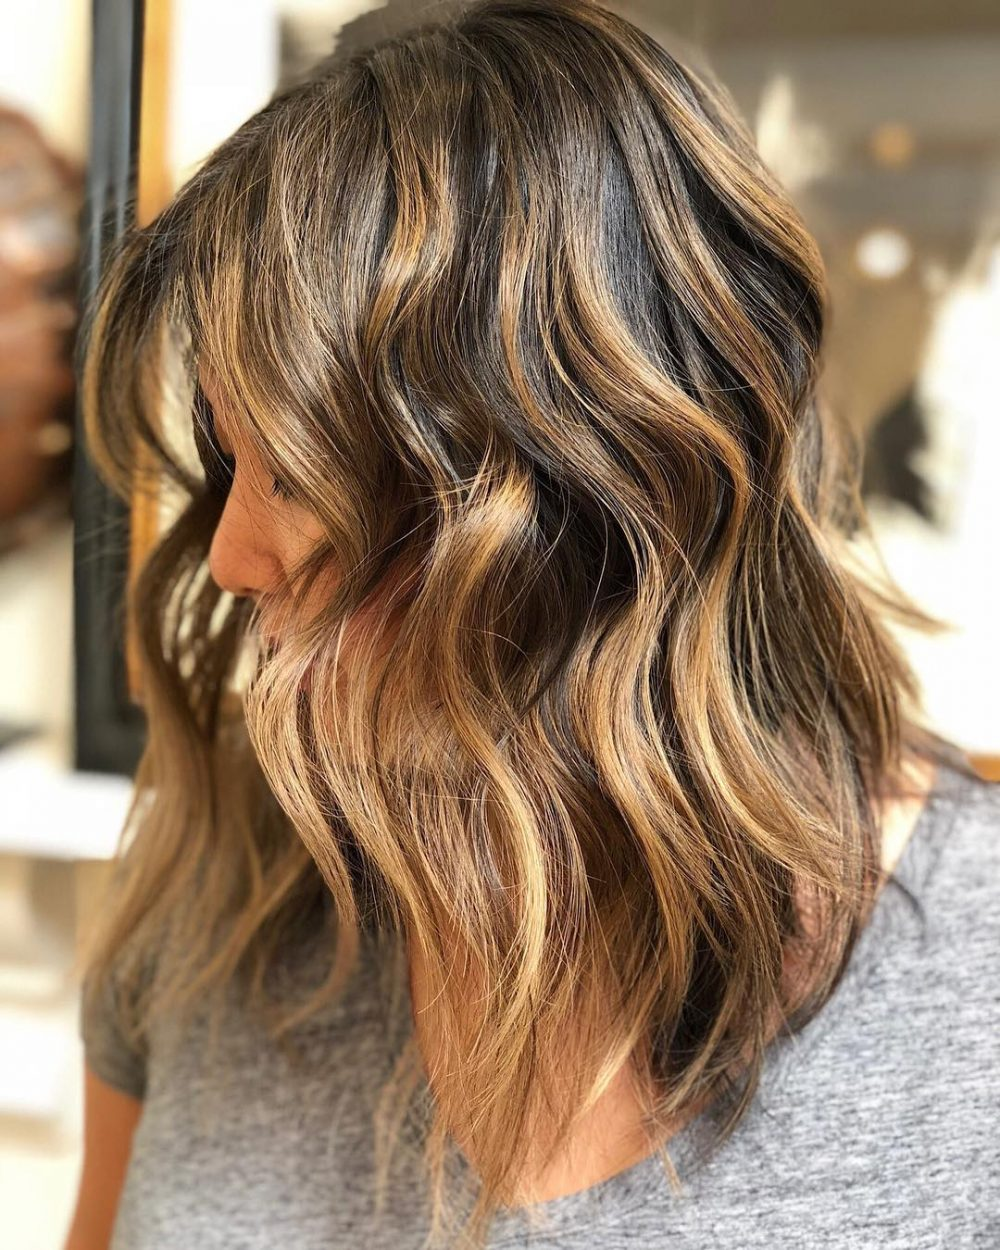 37 Different Hairstyles To Try in 2018